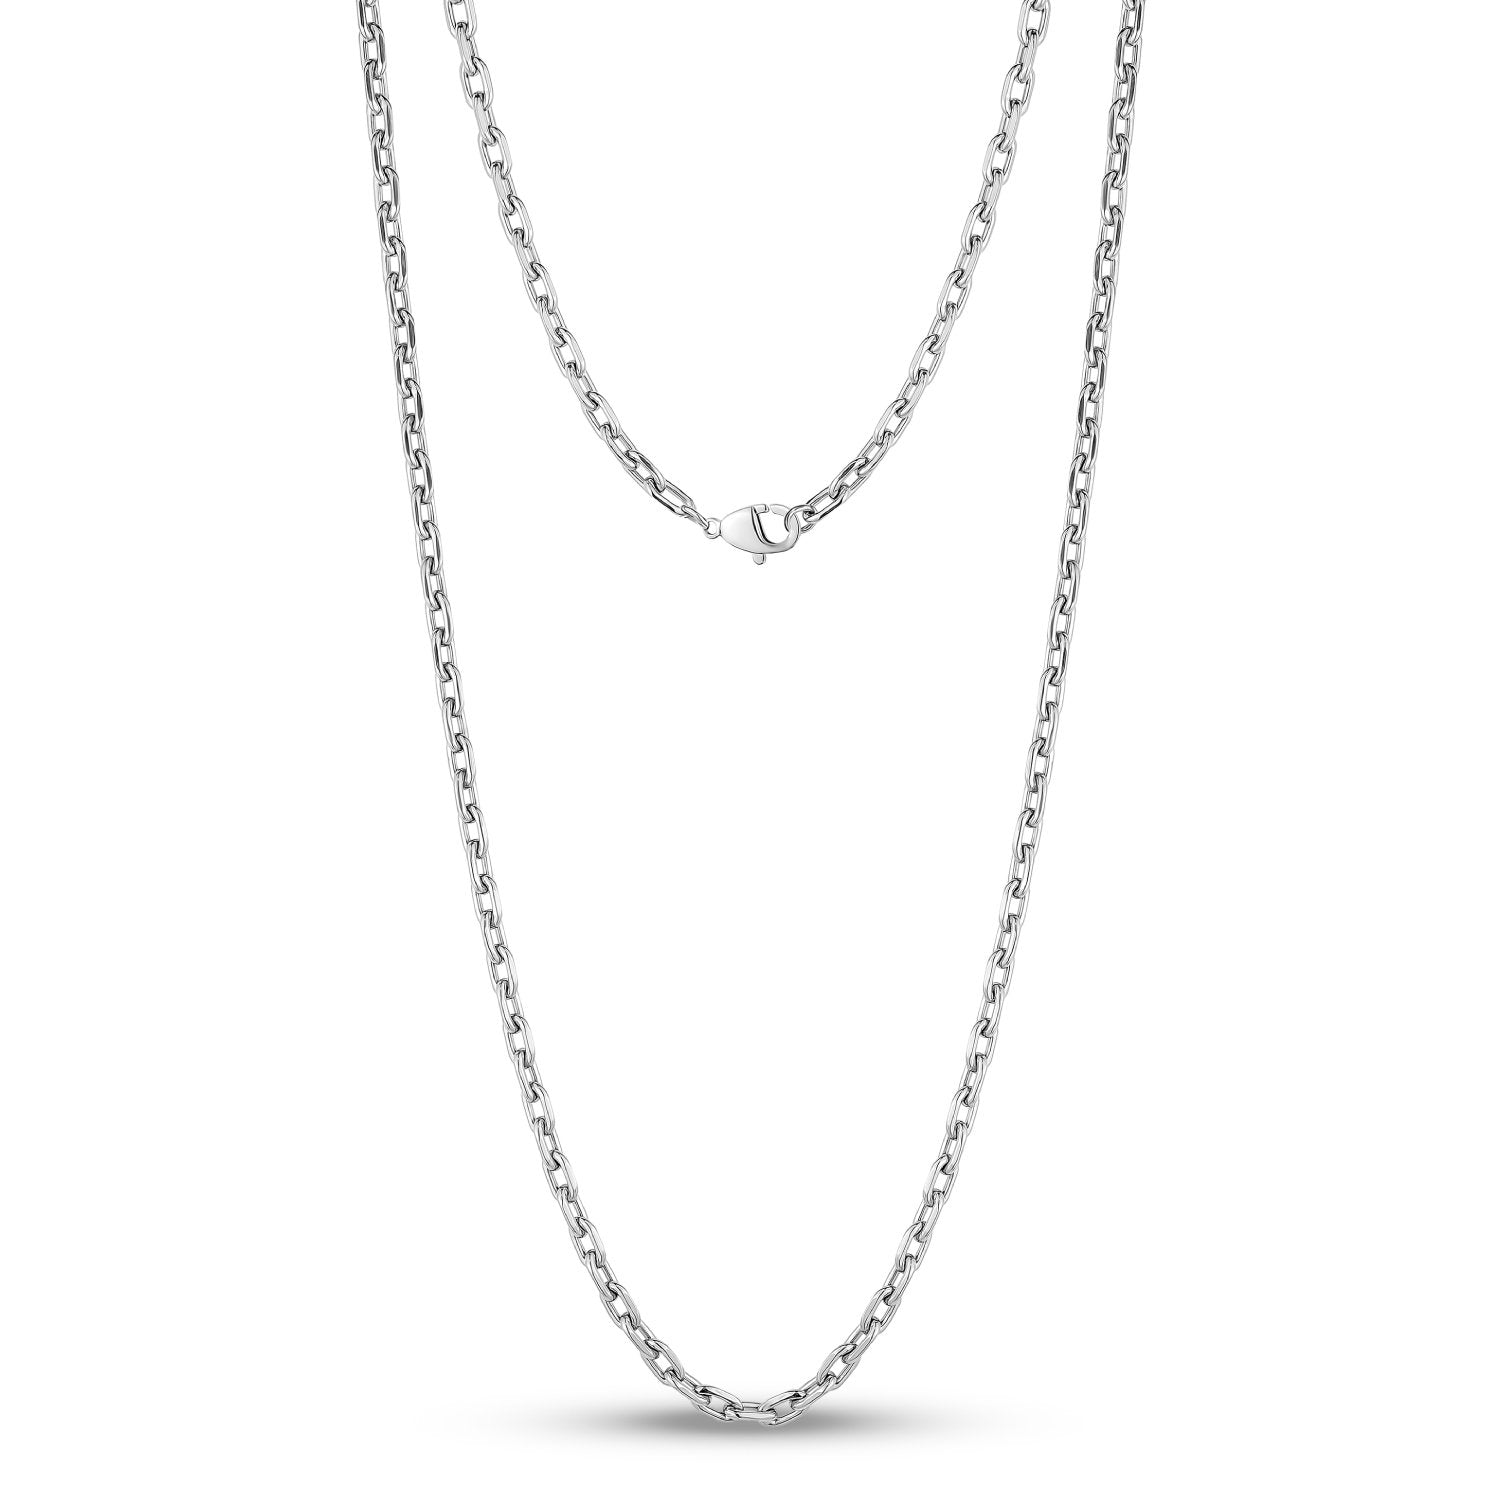 Men Necklace - 4mm Stainless Steel Oval Link Chain Necklace